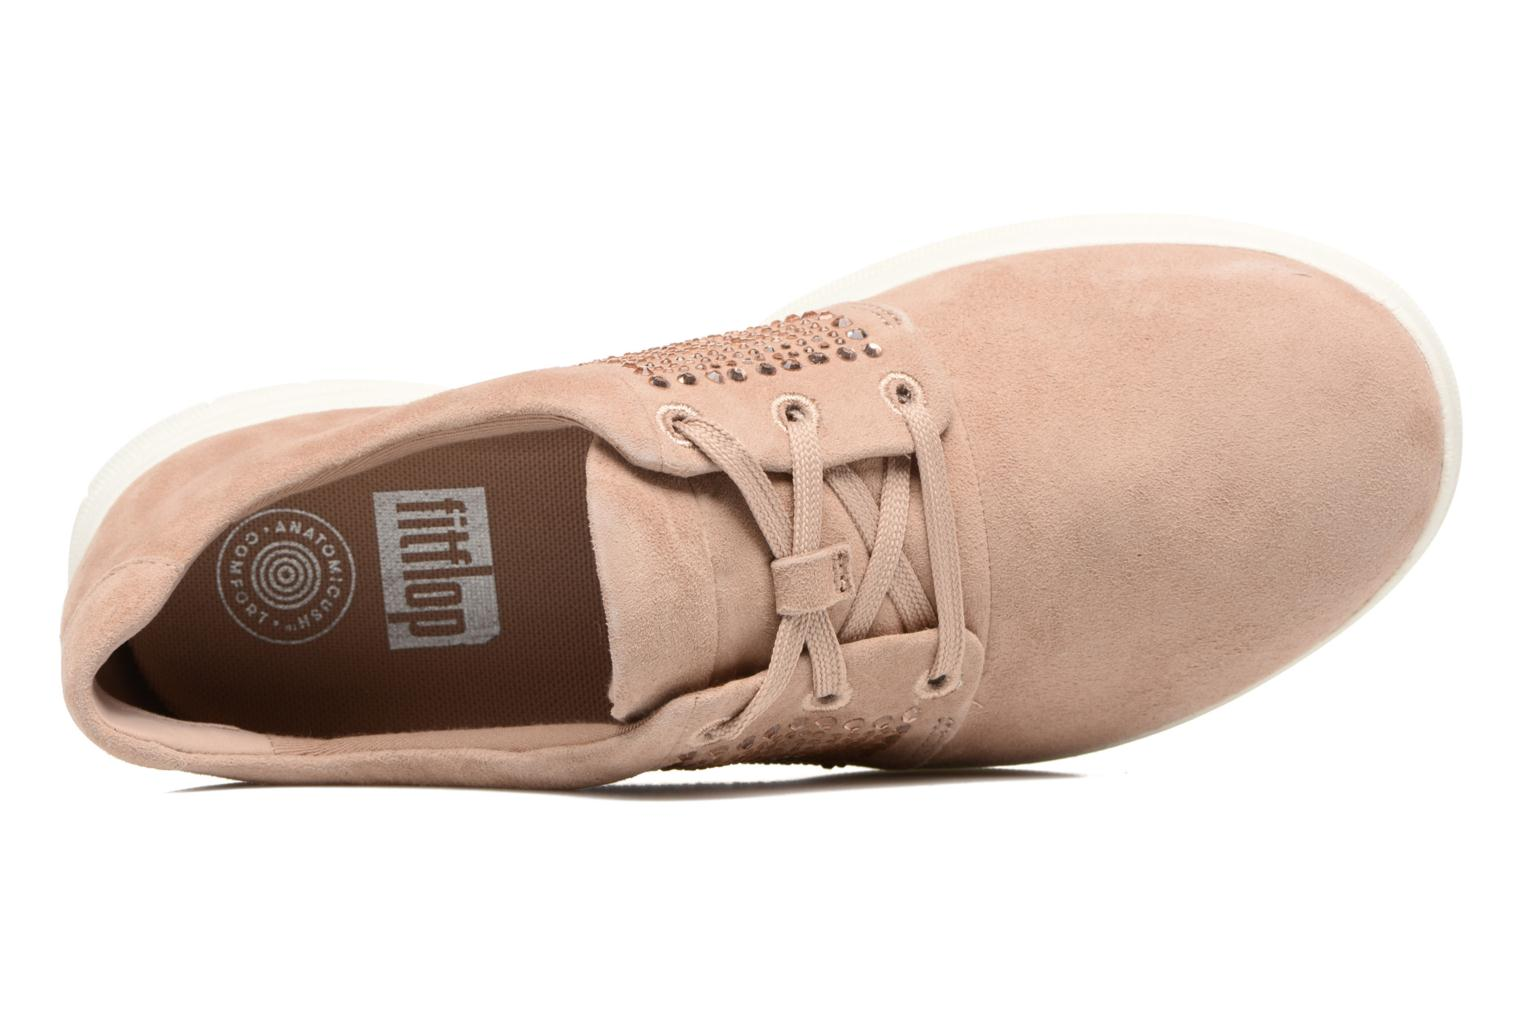 Trainers FitFlop Sporty-Pop X CRYSTAL Sneaker Pink view from the left